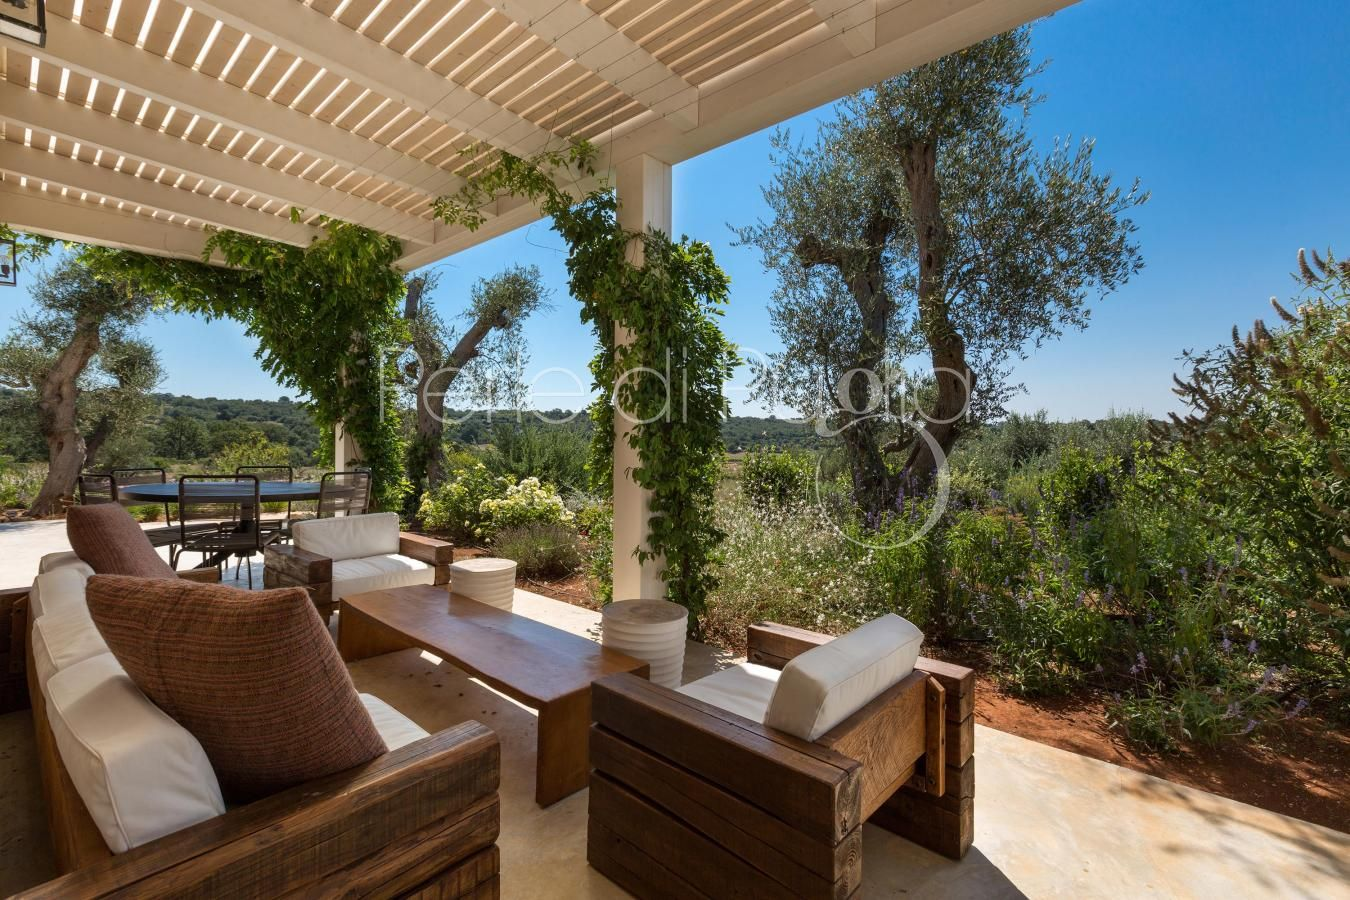 Le Ali Bianche is an exceptional luxury villa with